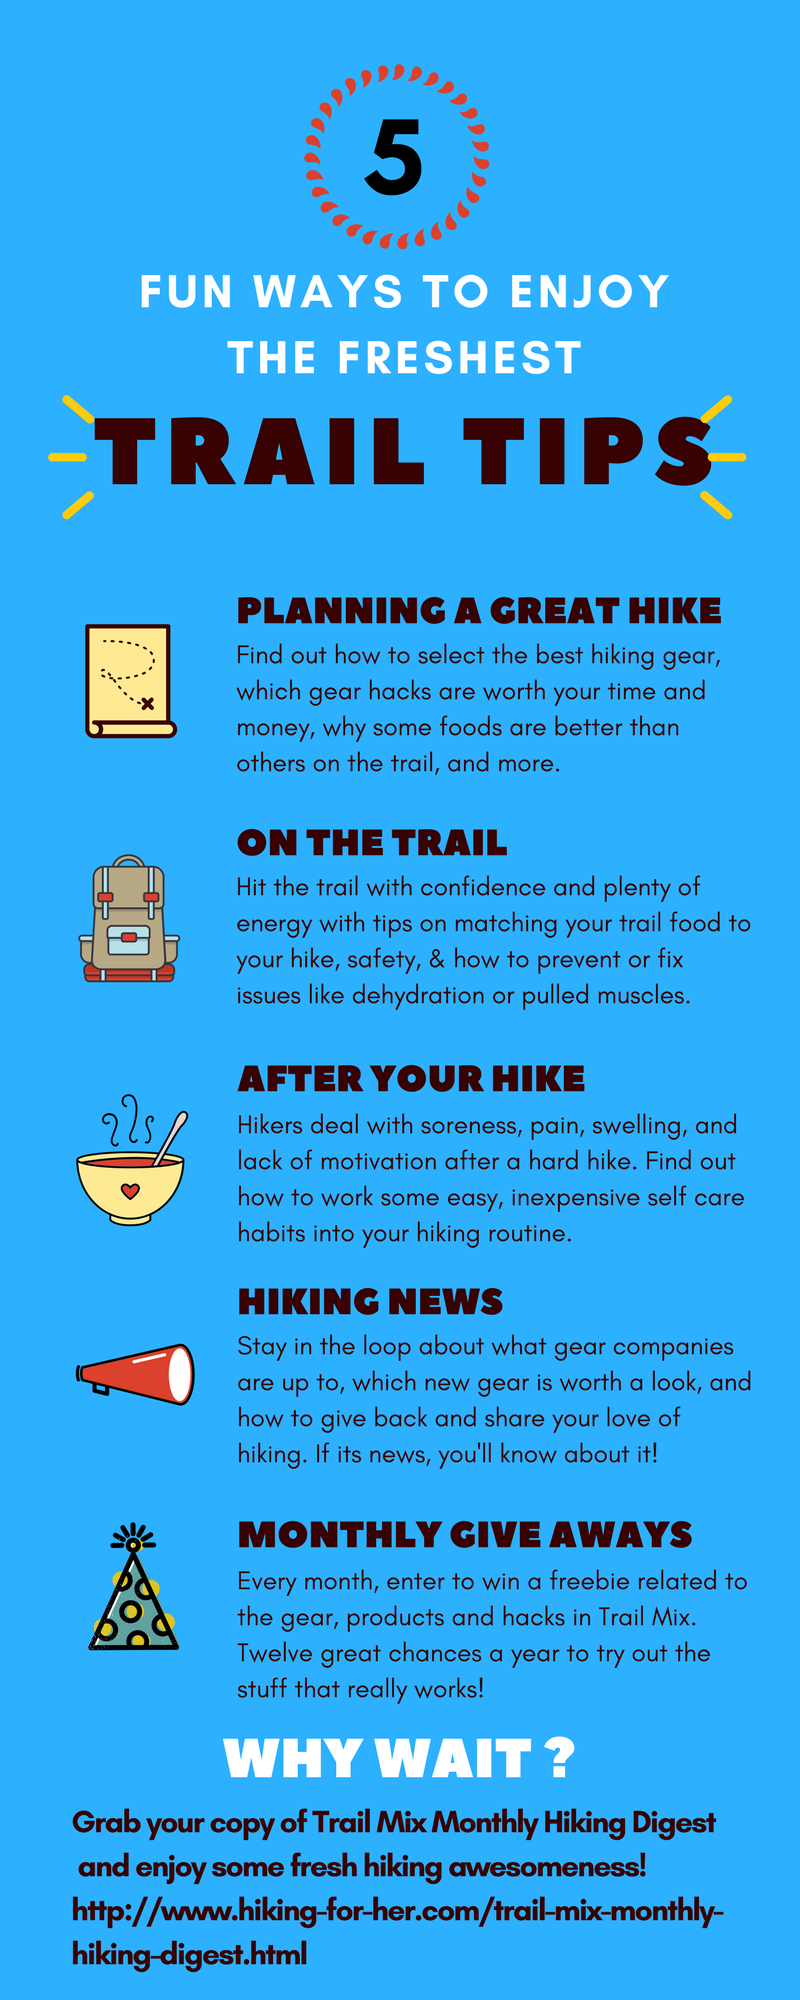 Ready for the freshest, most detailed and helpful hiking tips you can find? Hiking For Her's monthly Trail Mix will help you stay safe, comfortable, well fed, happy and motivated on your hikes.